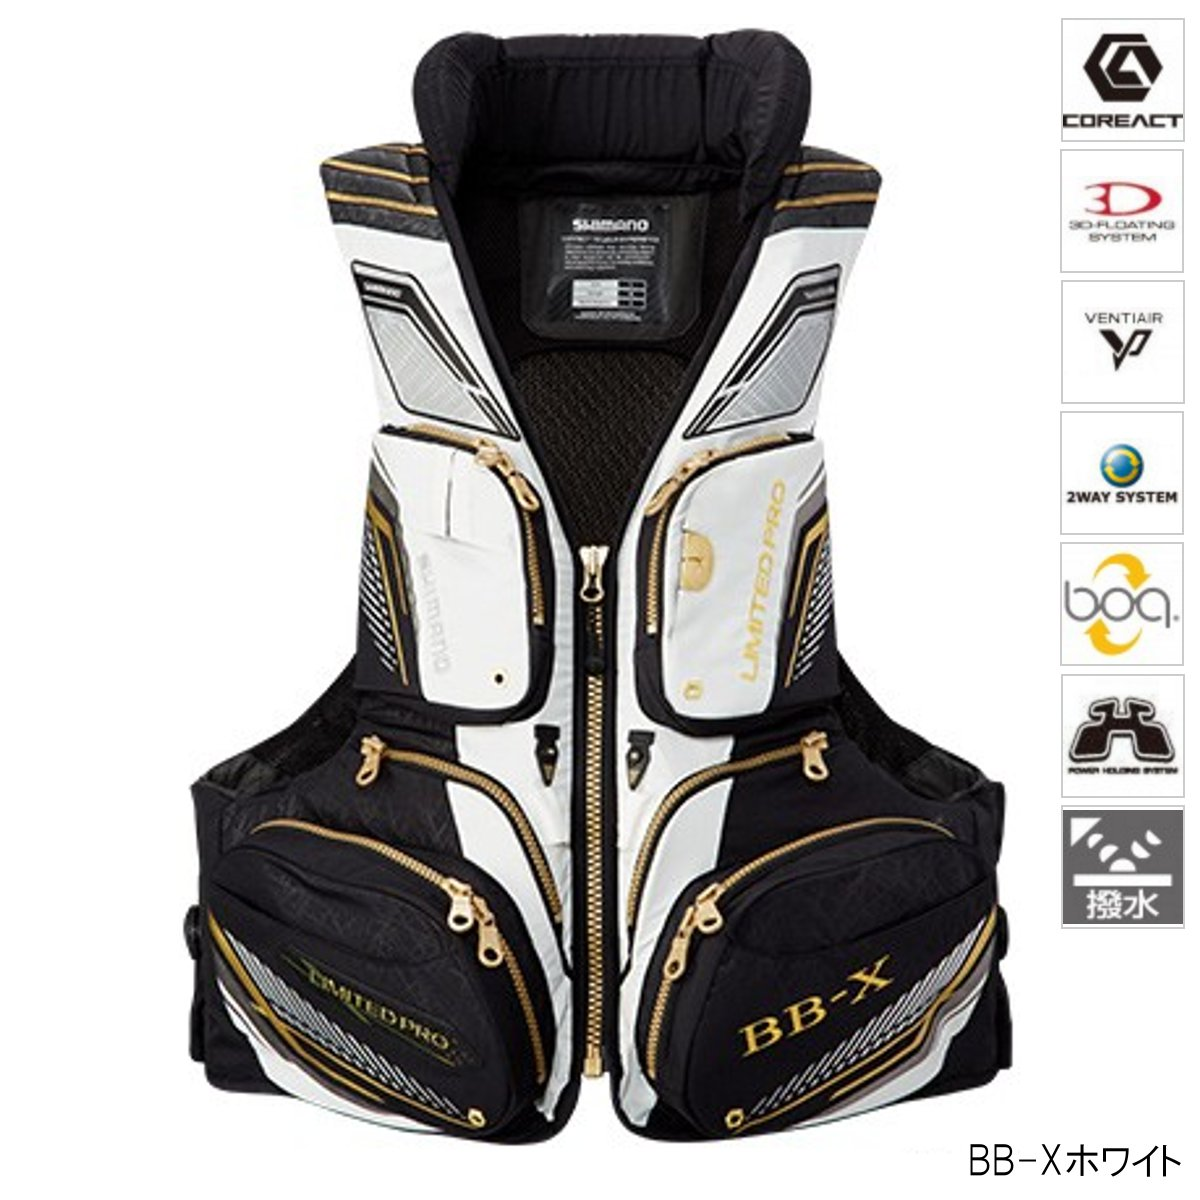 シマノ NEXUS FLOATING VEST LIMITED PRO(枕付) VF-111Q M BB-Xホワイト